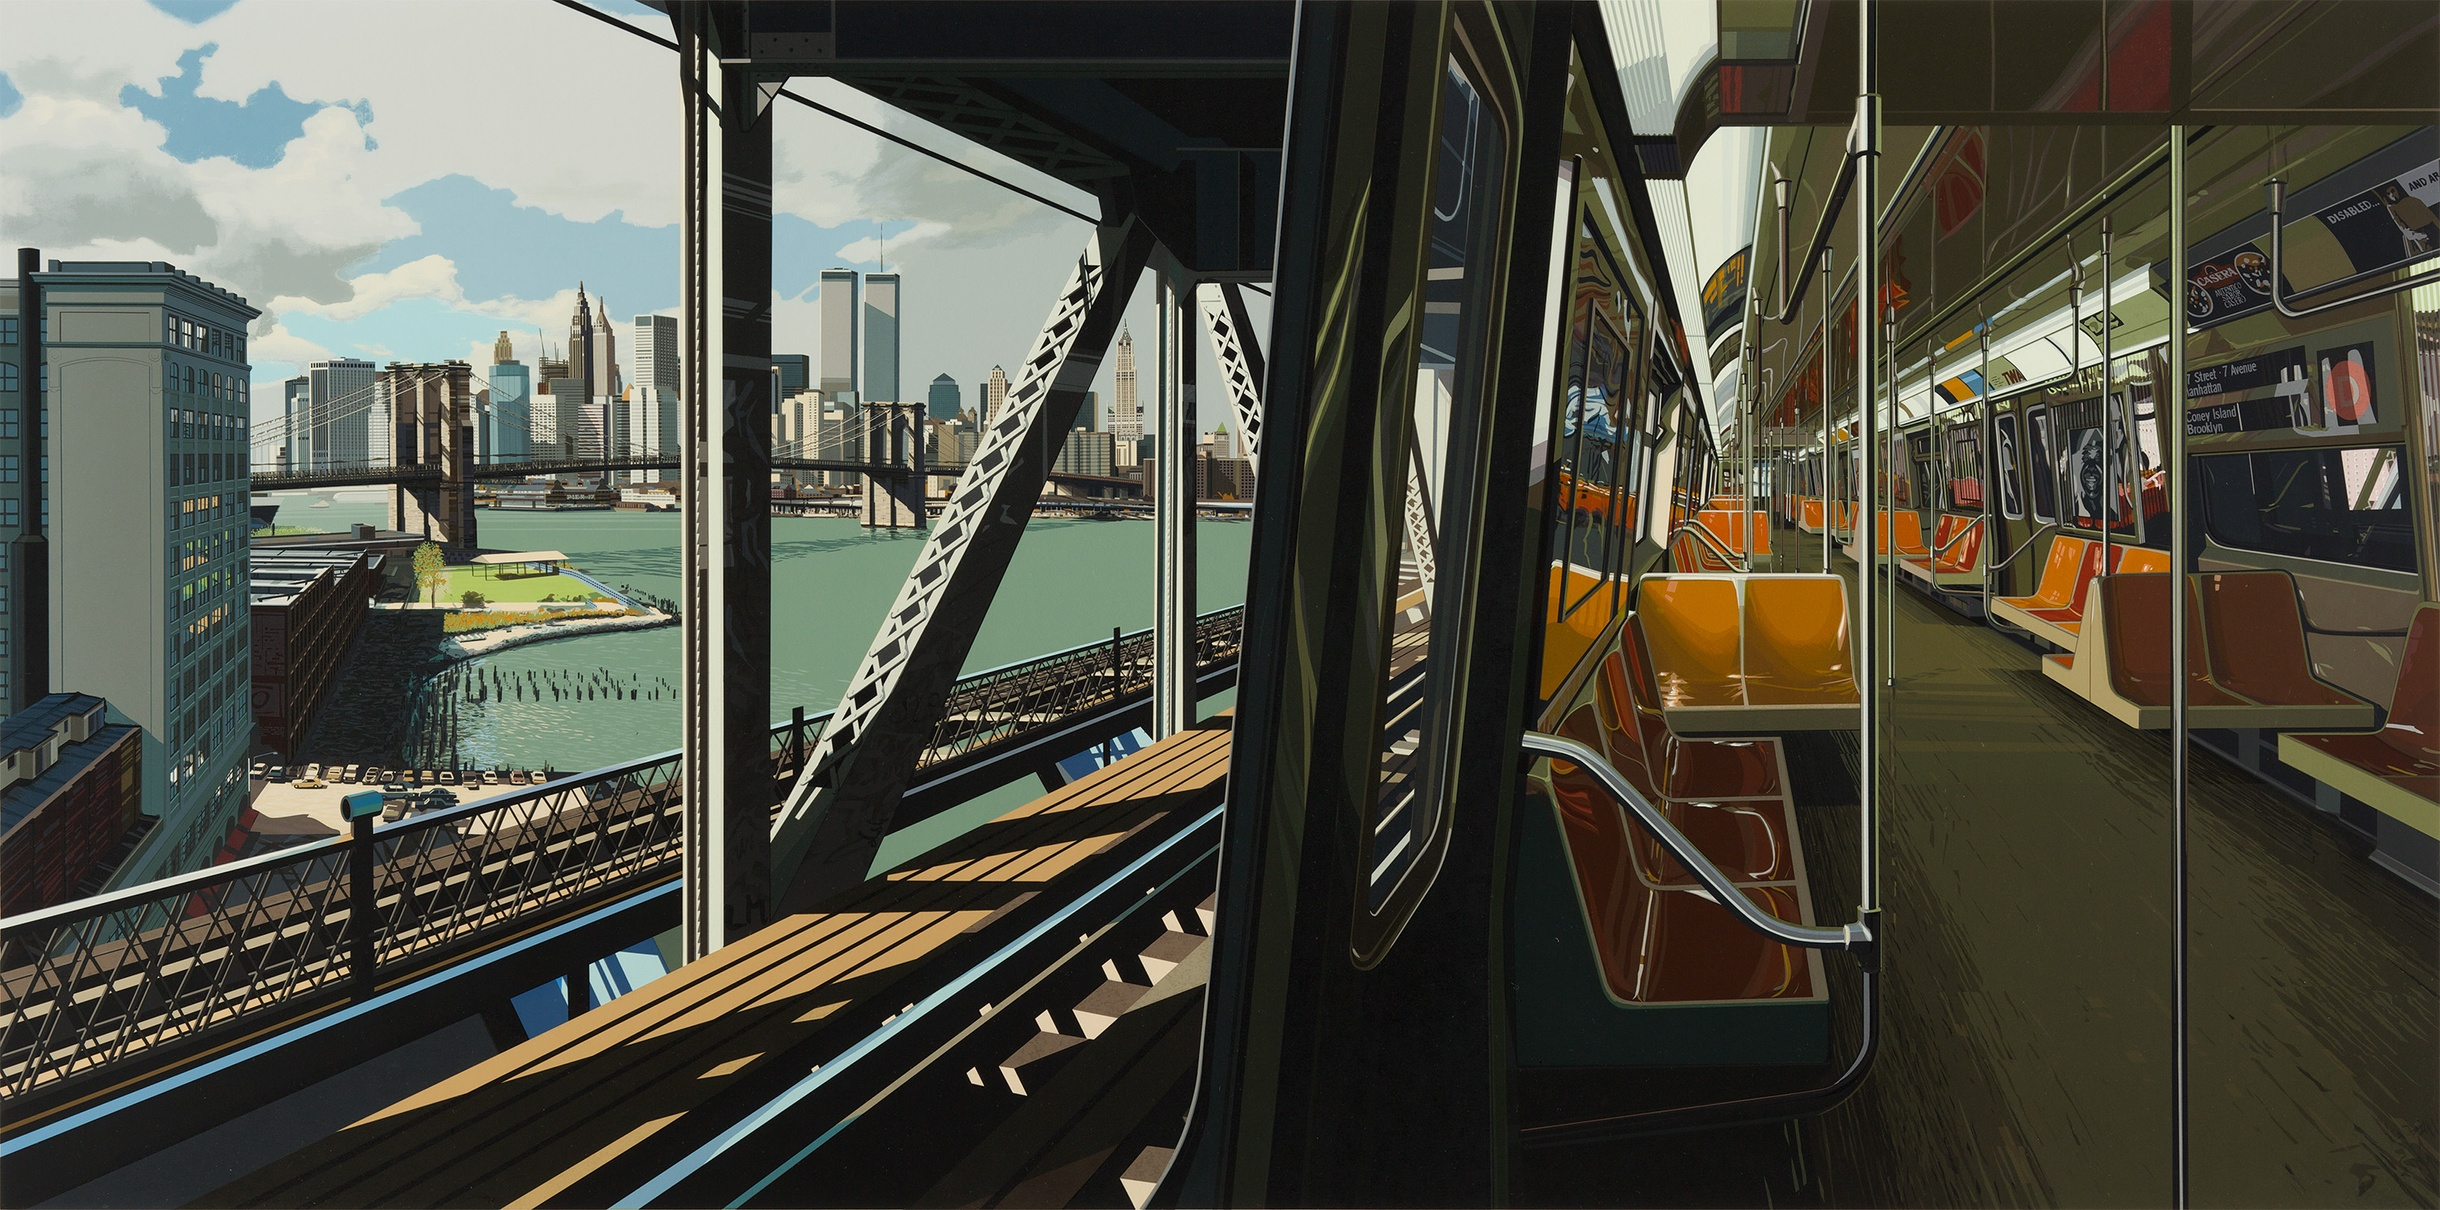 A realistic painting looking at the New York City skyline from the inside of an empty subway car. The train is crossing the East River, and you can see the water. The twin towers are still standing.